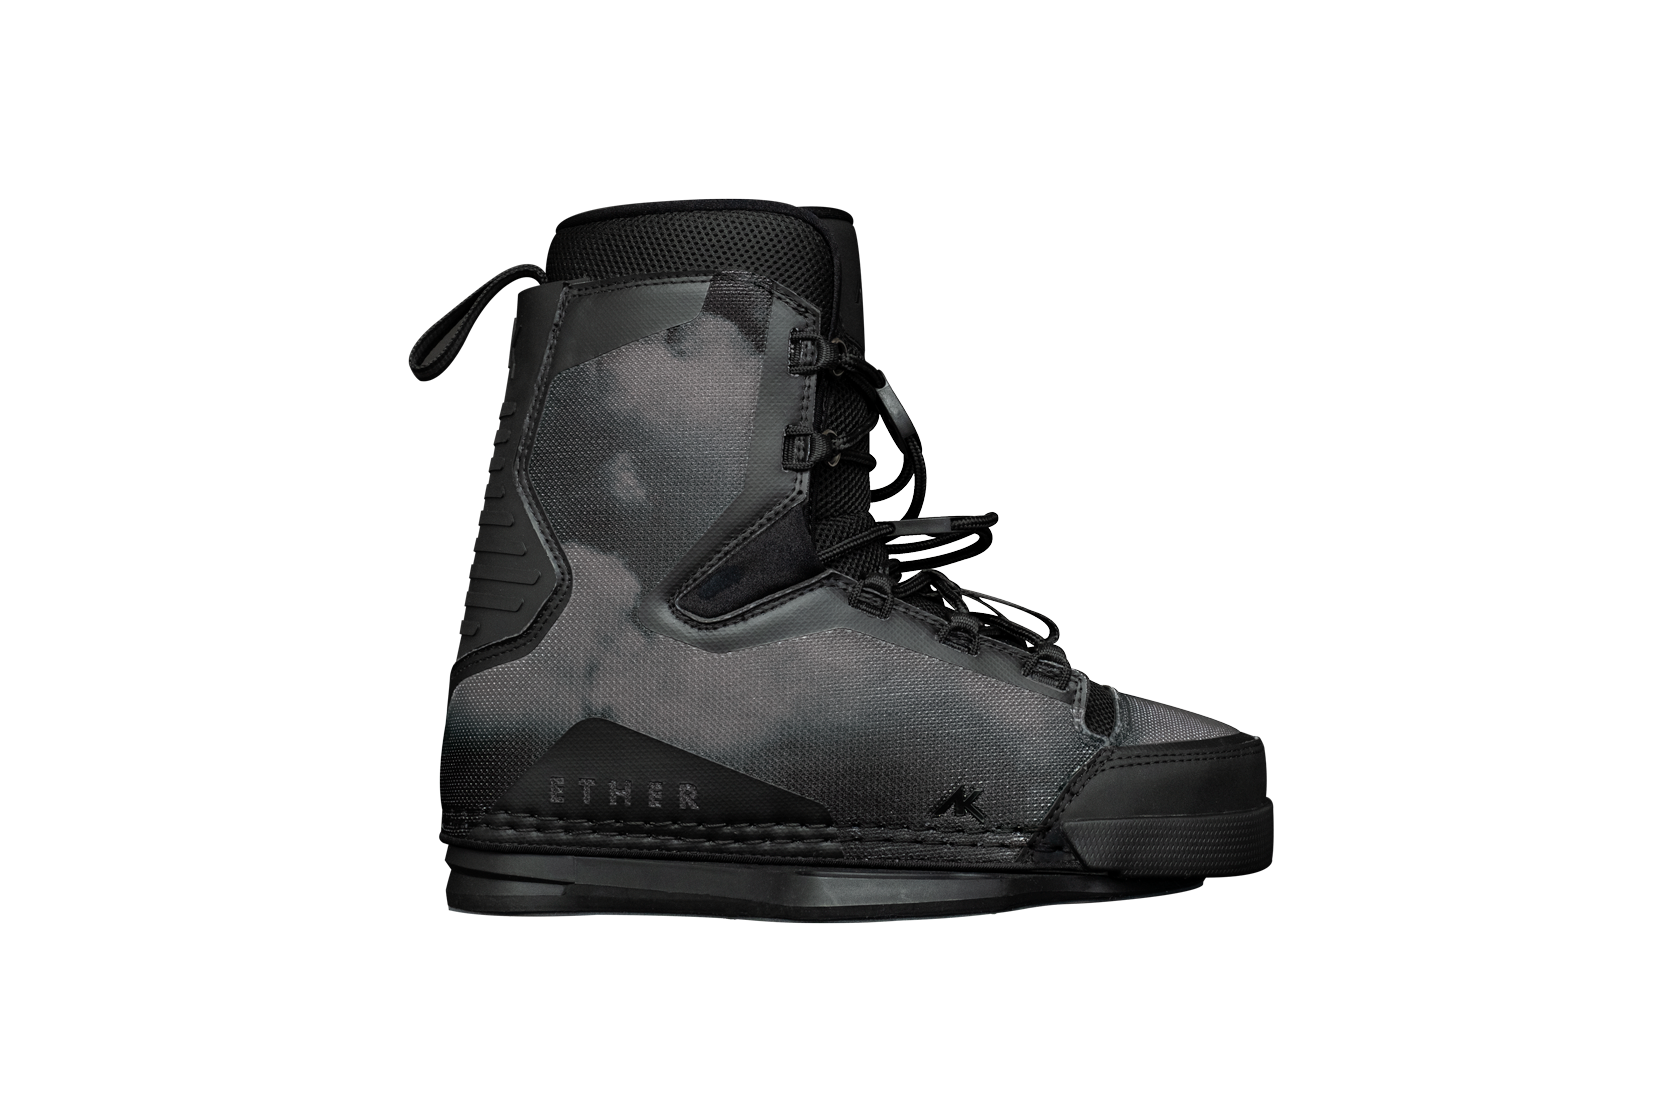 21_AK_Ether Boot_img-01